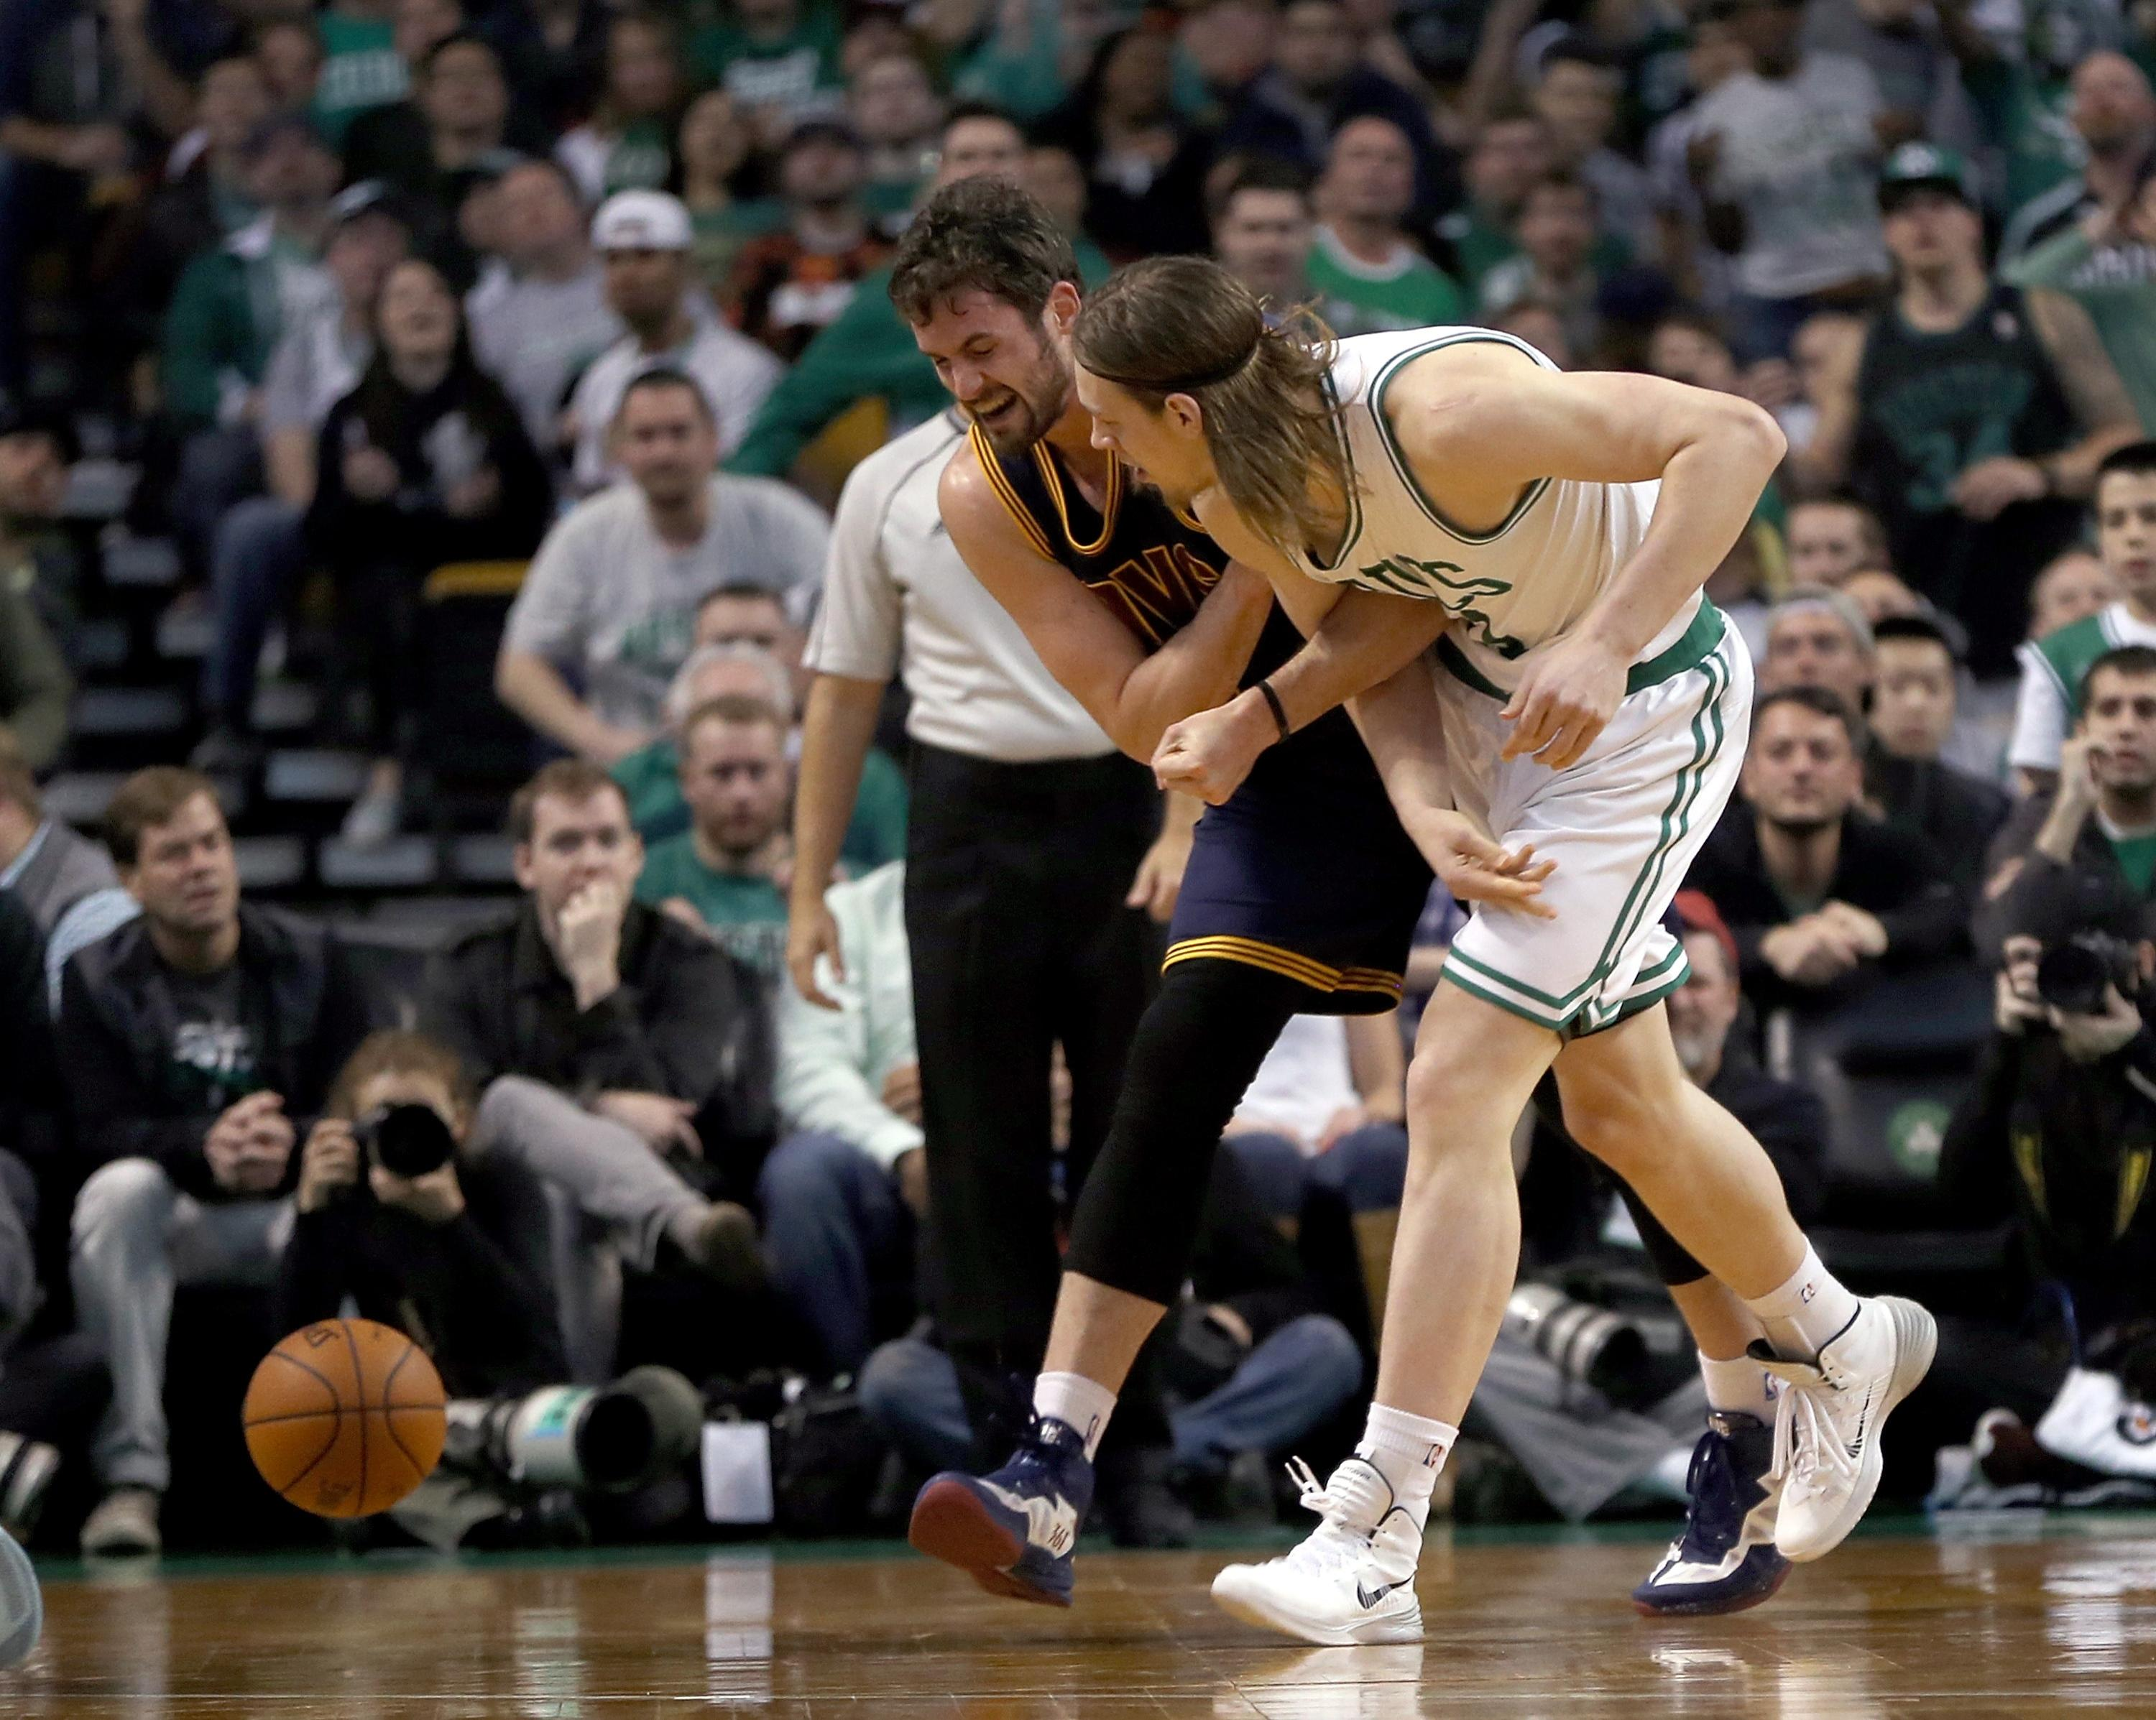 Love to miss Round 2, J.R. and Olynyk suspended in Cavs-Celtics aftermath